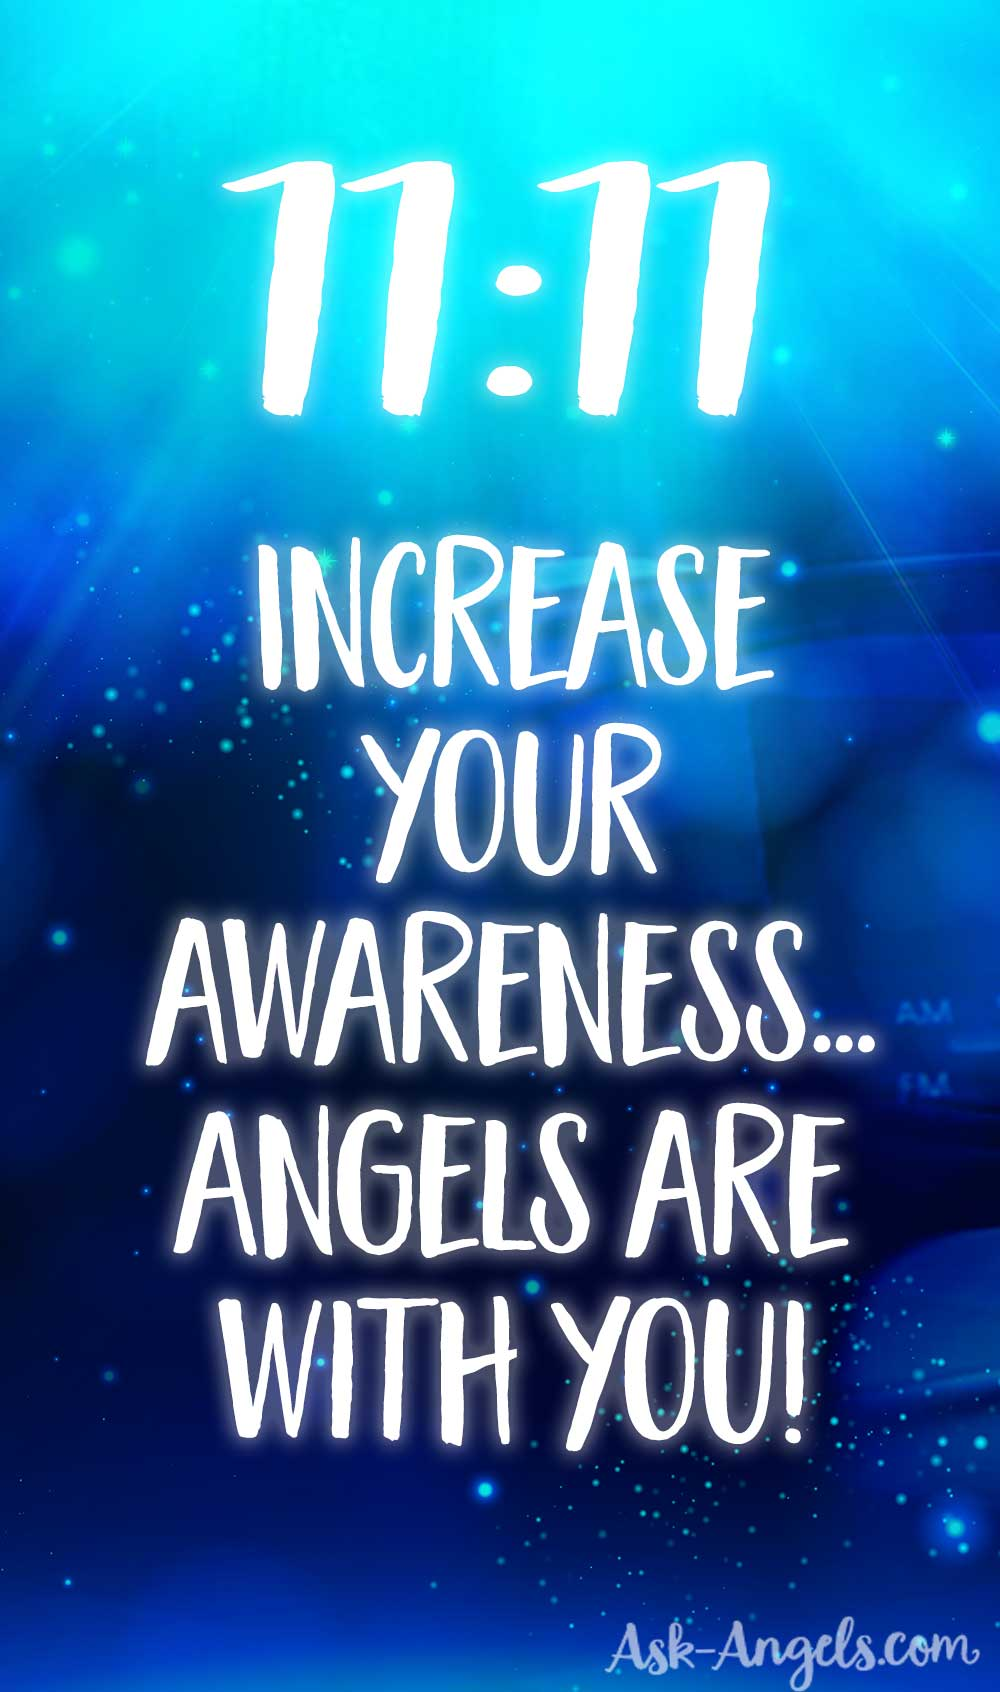 The Angel Number 1111 has many layers of meaning. It is often a sign of angels and a reminder to become aware and present so you can begin to experience the angelic energy and guidance that is with you. #11